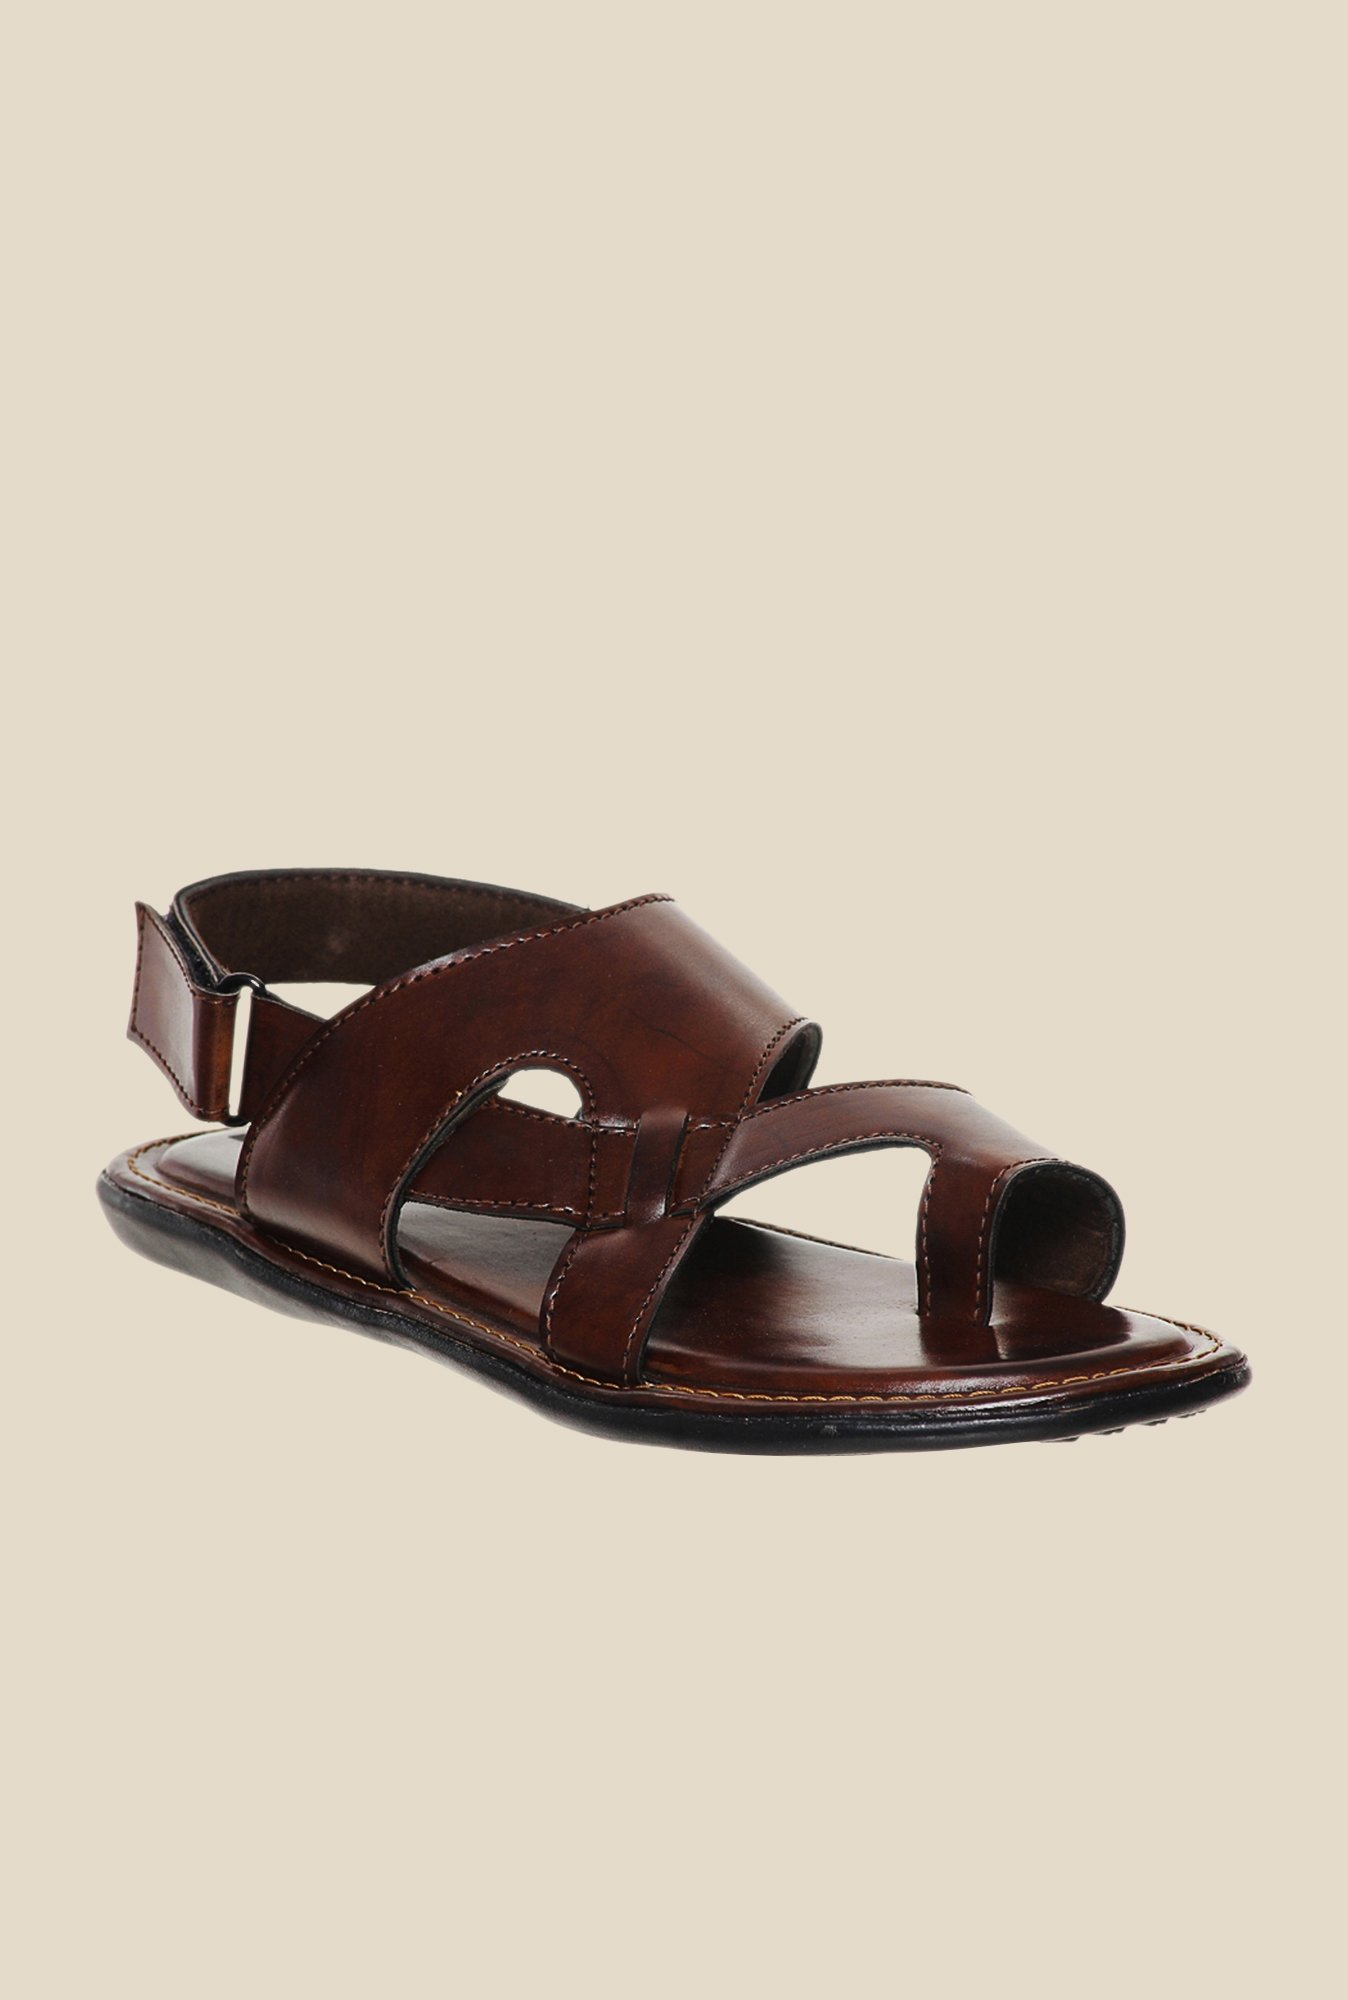 Bruno Manetti Brown Back Strap Sandals